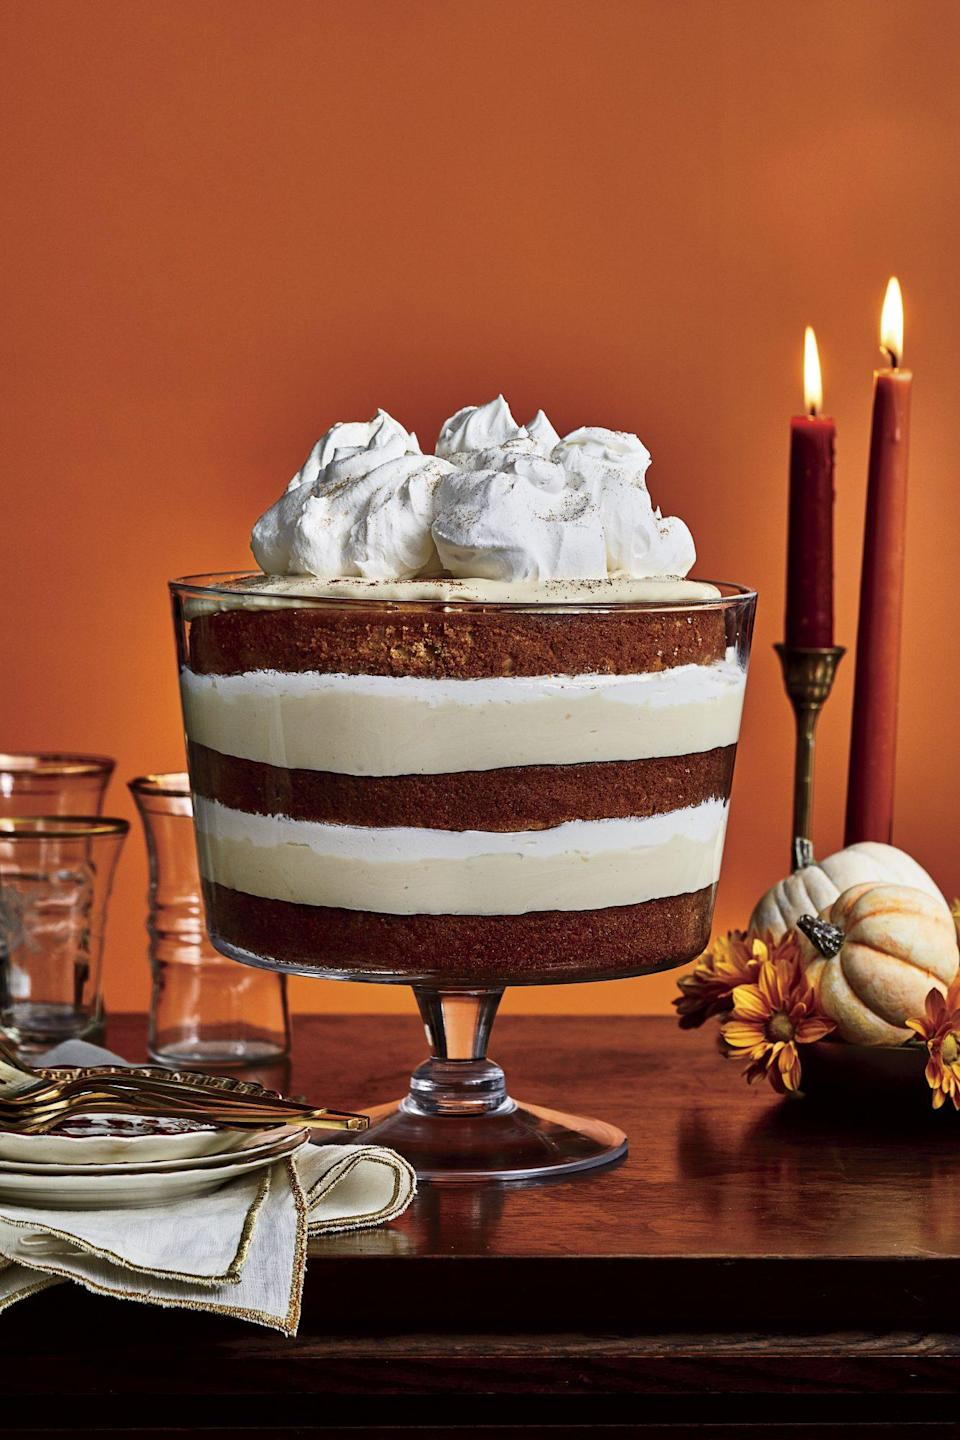 """<p><strong>Recipe: <a href=""""https://www.southernliving.com/recipes/butterscotch-spice-trifle"""" rel=""""nofollow noopener"""" target=""""_blank"""" data-ylk=""""slk:Butterscotch-Spice Trifle"""" class=""""link rapid-noclick-resp"""">Butterscotch-Spice Trifle</a></strong></p> <p>Thin layers of spice cake turn this vintage recipe into a modern masterpiece.</p>"""